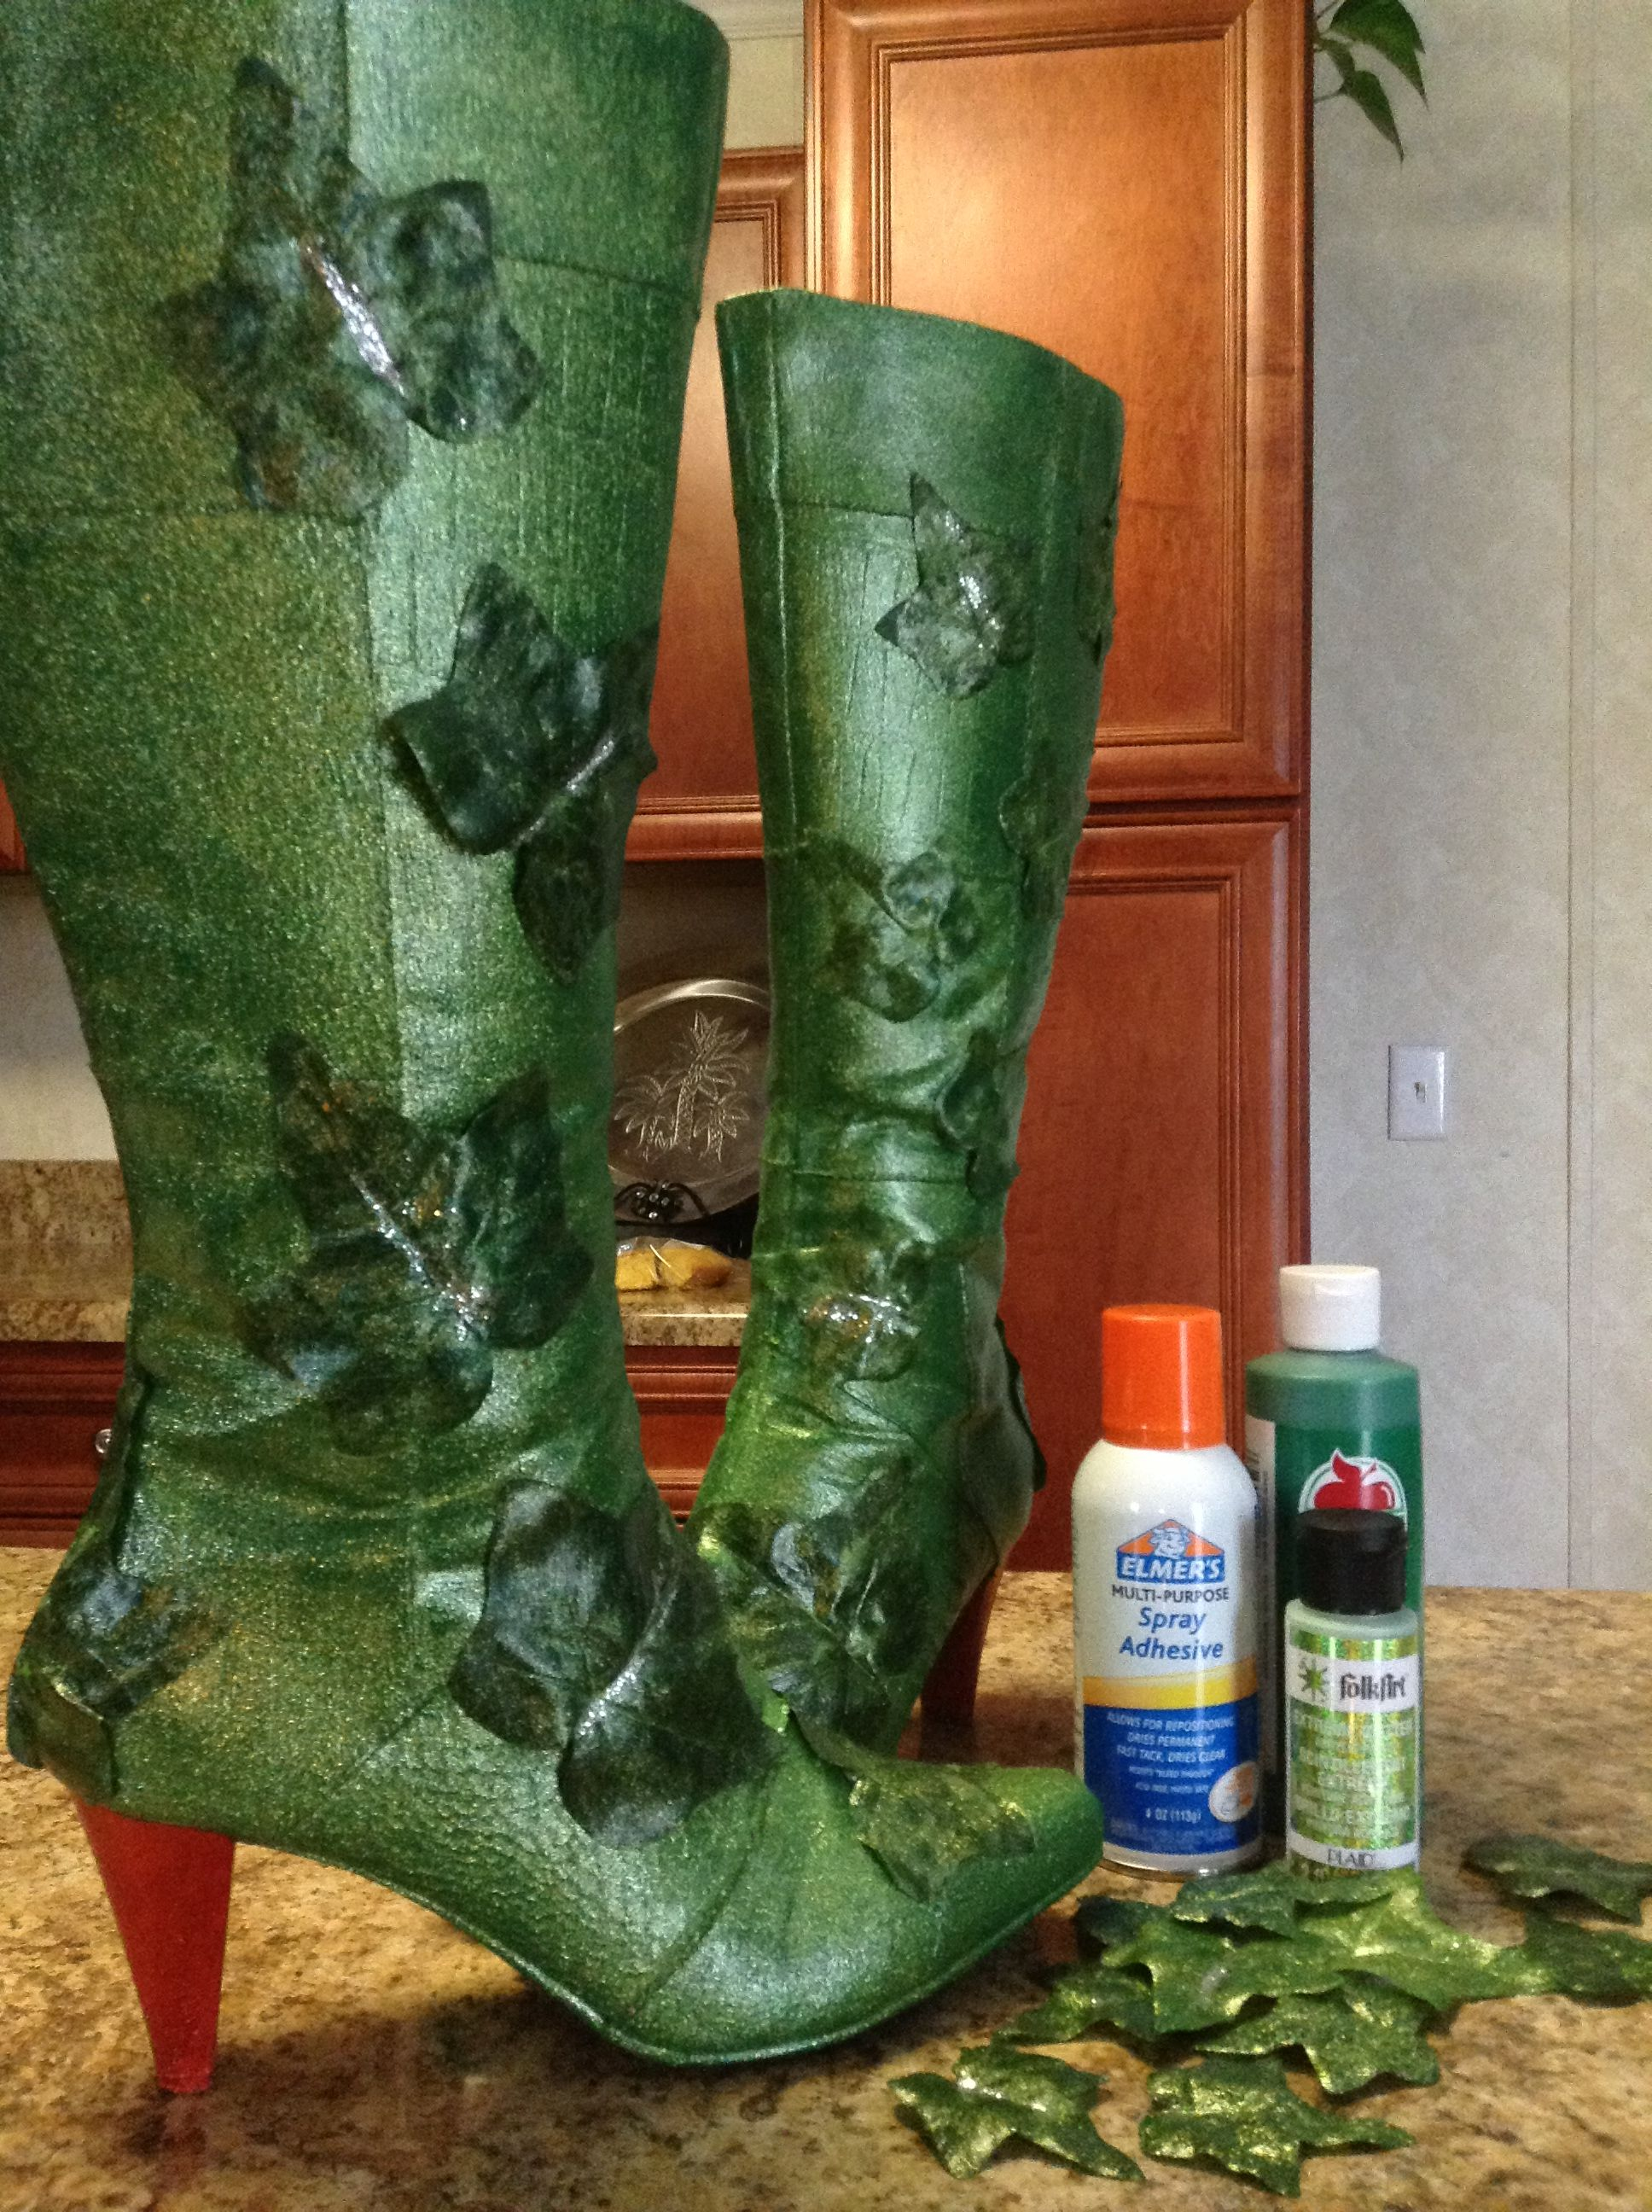 Poison ivy costume boots diy halloween pinterest poison poison ivy costume boots diy solutioingenieria Choice Image